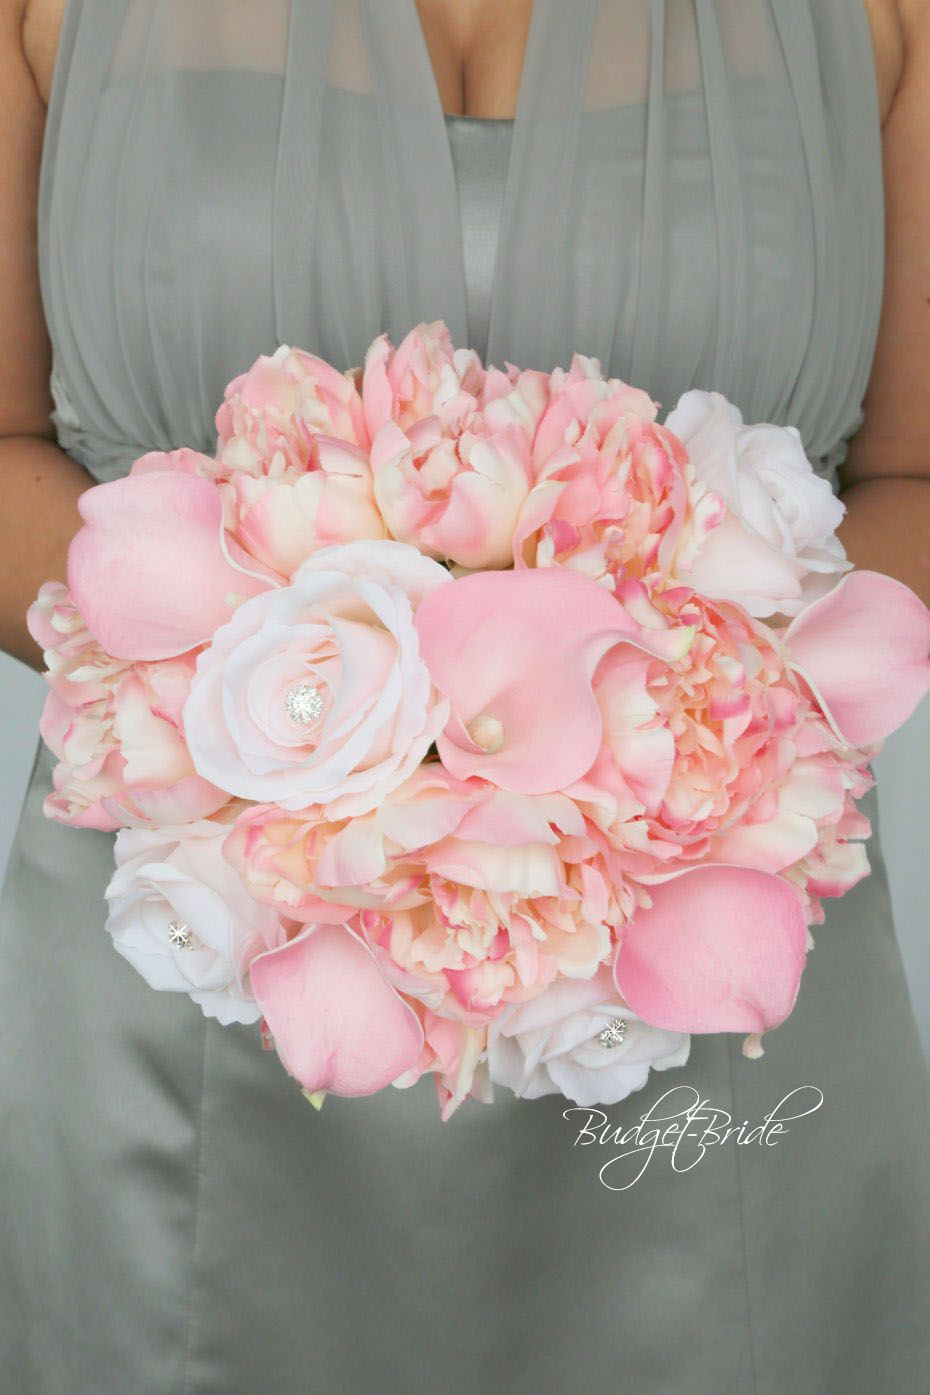 Davids Bridal Pink and Grey theme wedding with Calla Lily and Peony ...